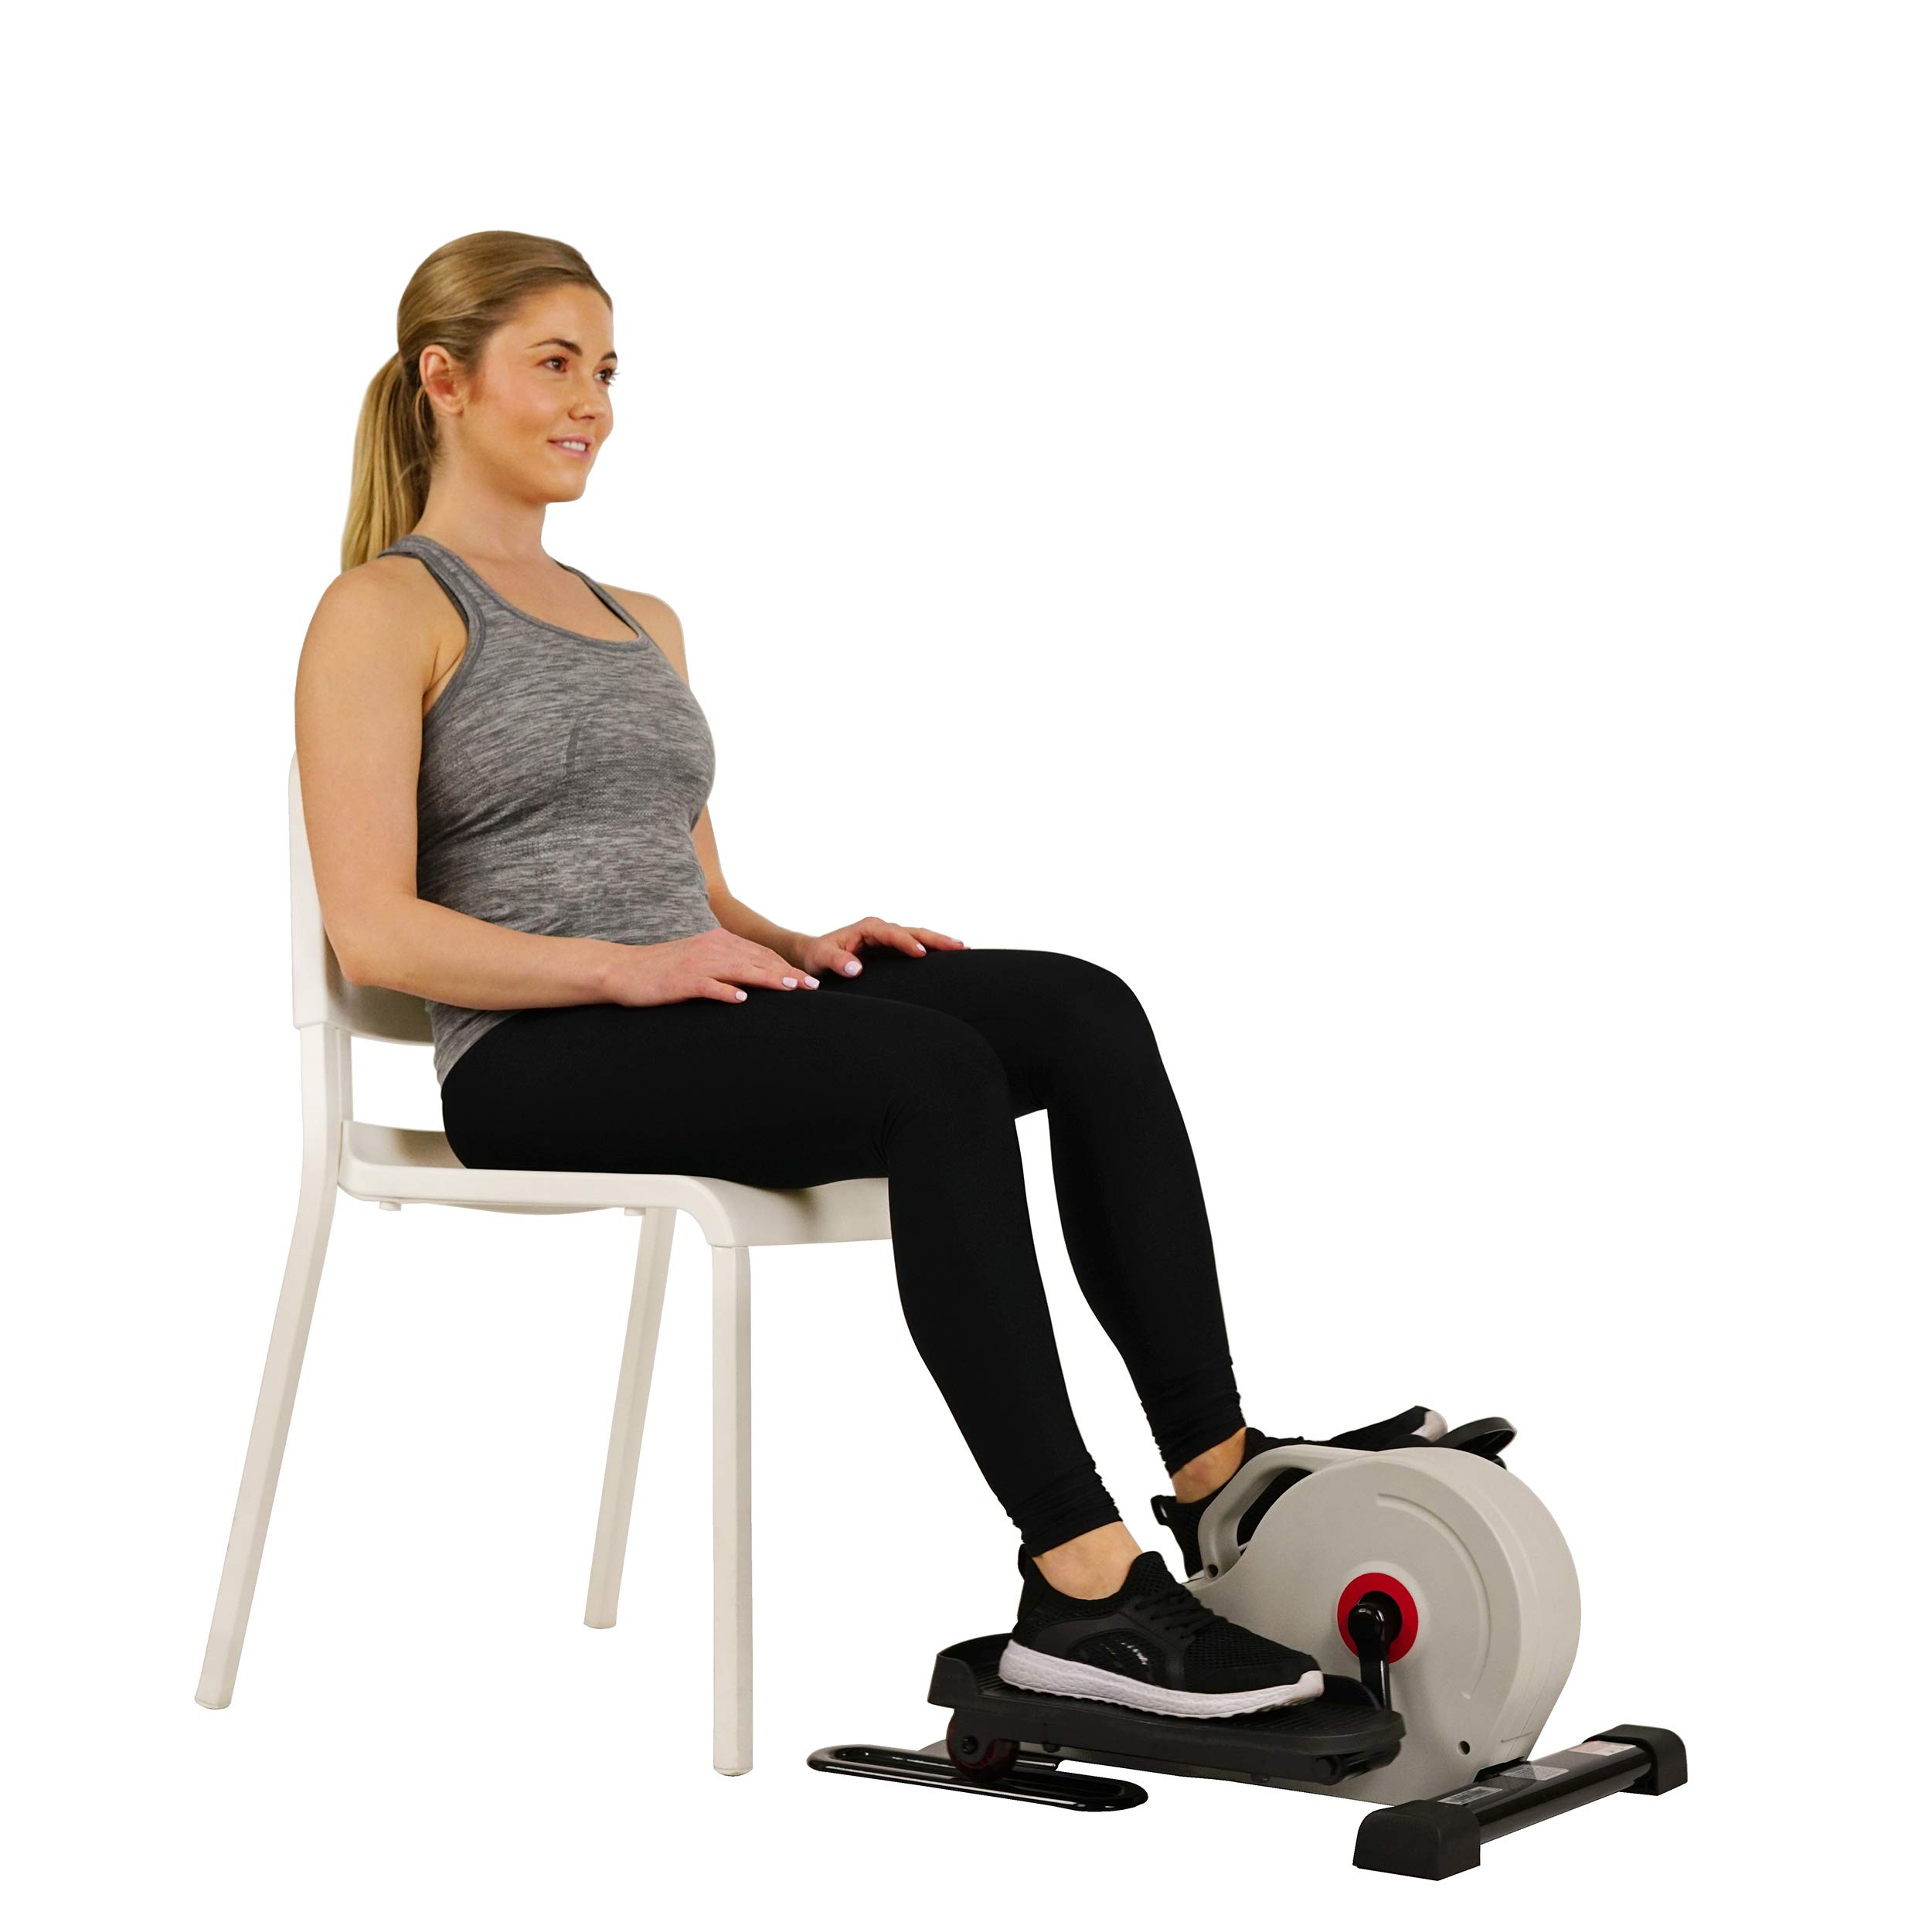 Sunny Health & Fitness Fully Assembled Magnetic Under Desk Elliptical - SF-E3872 by Sunny Health & Fitness (Image #1)